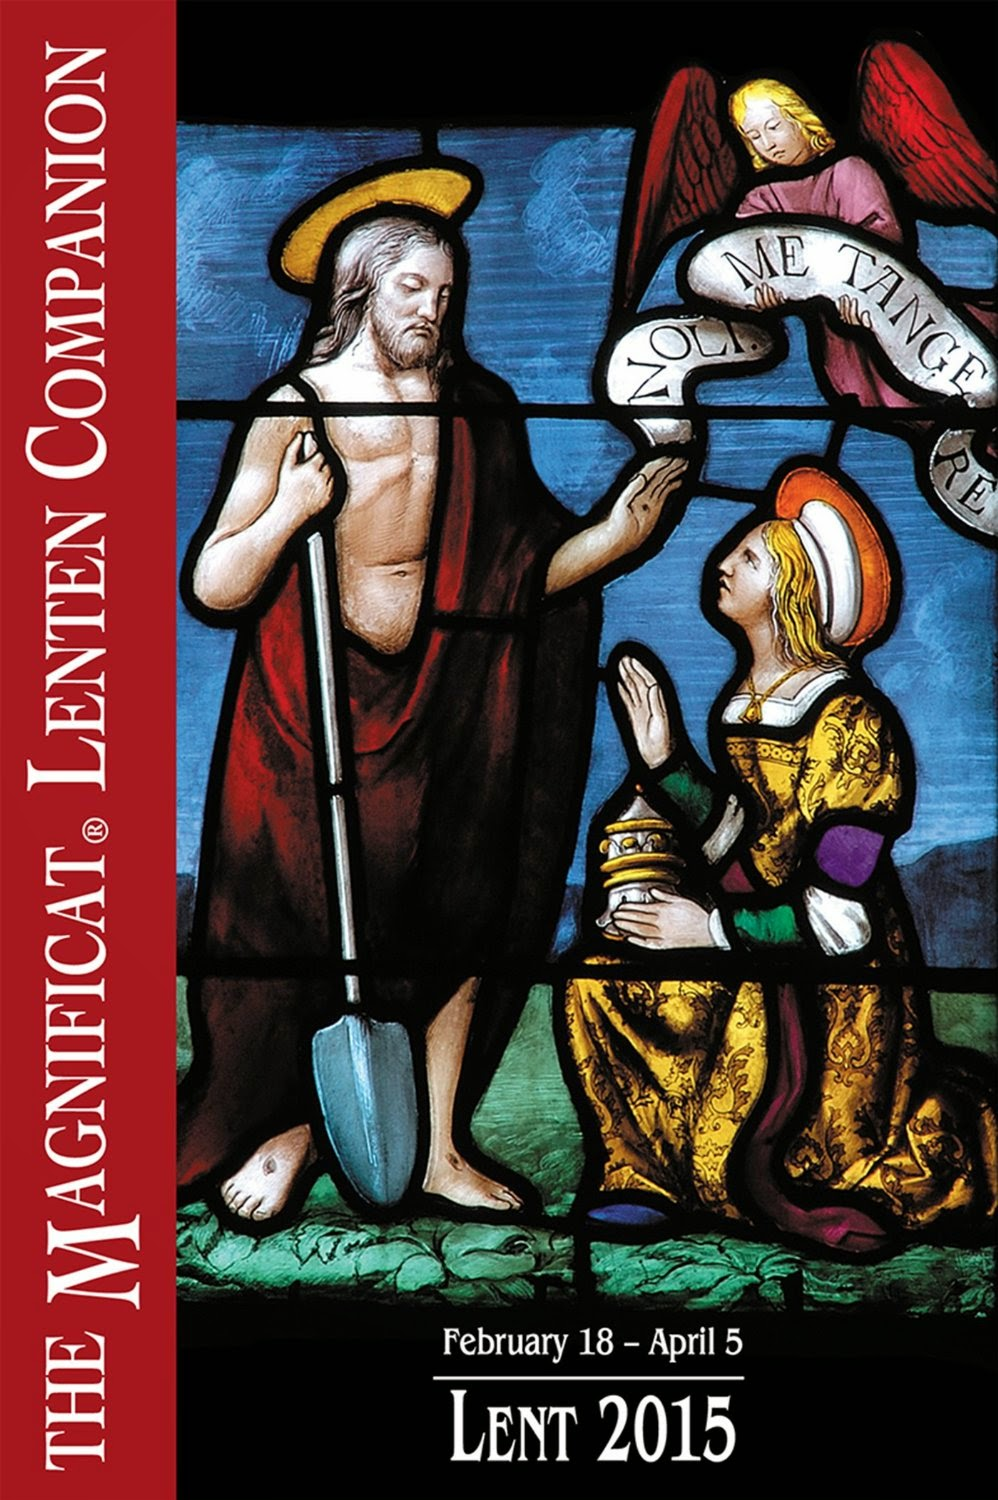 http://www.amazon.com/2015-Magnificat-Lenten-Companion-ebook/dp/B00S8XPDYY/ref=sr_1_1?ie=UTF8&qid=1423847114&sr=8-1&keywords=magnificat+lenten+companion